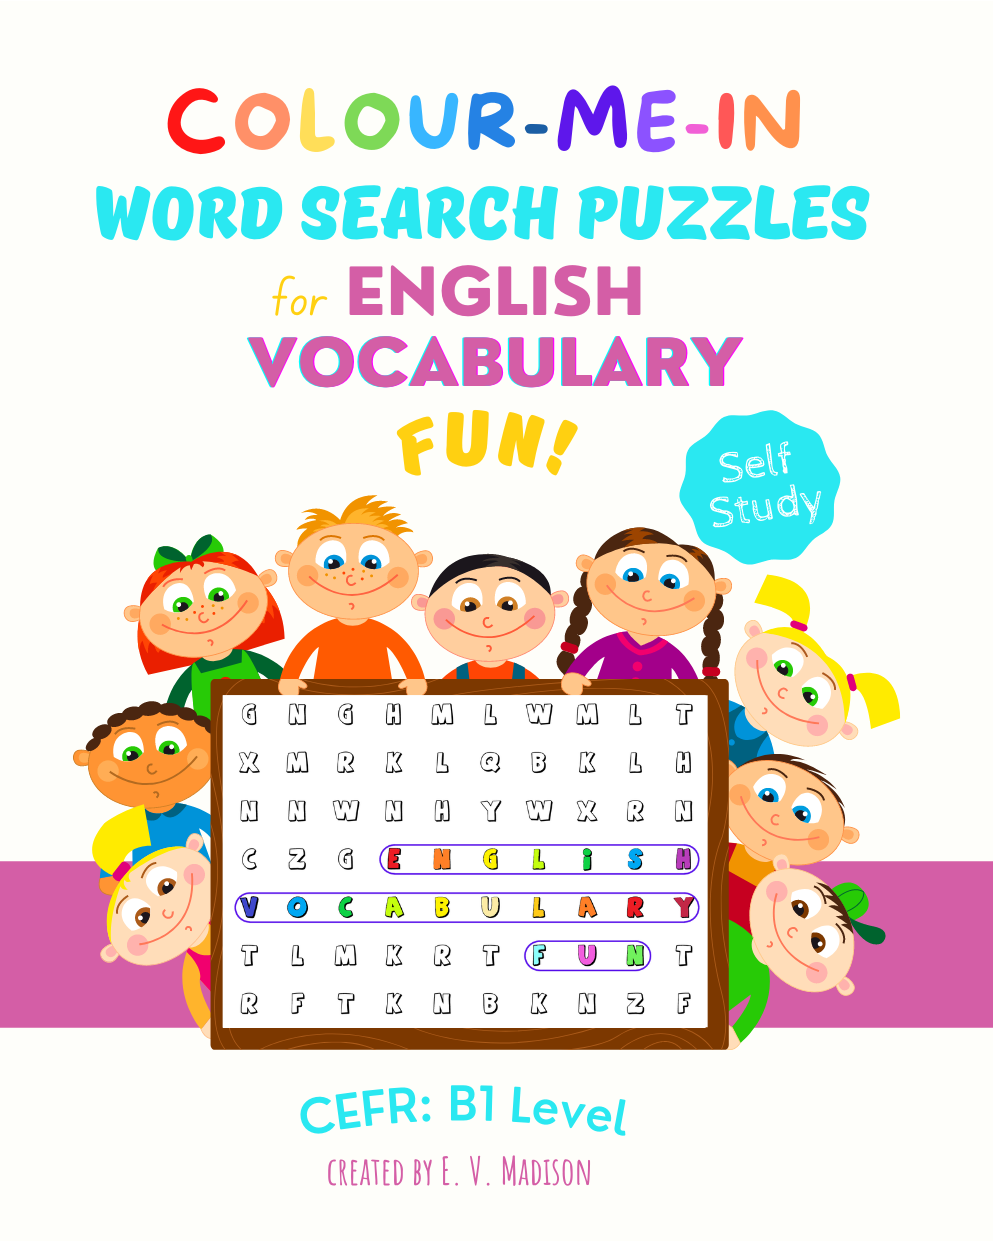 Colour-Me-In Word Search Puzzles for English Vocabulary Fun! B1 Level